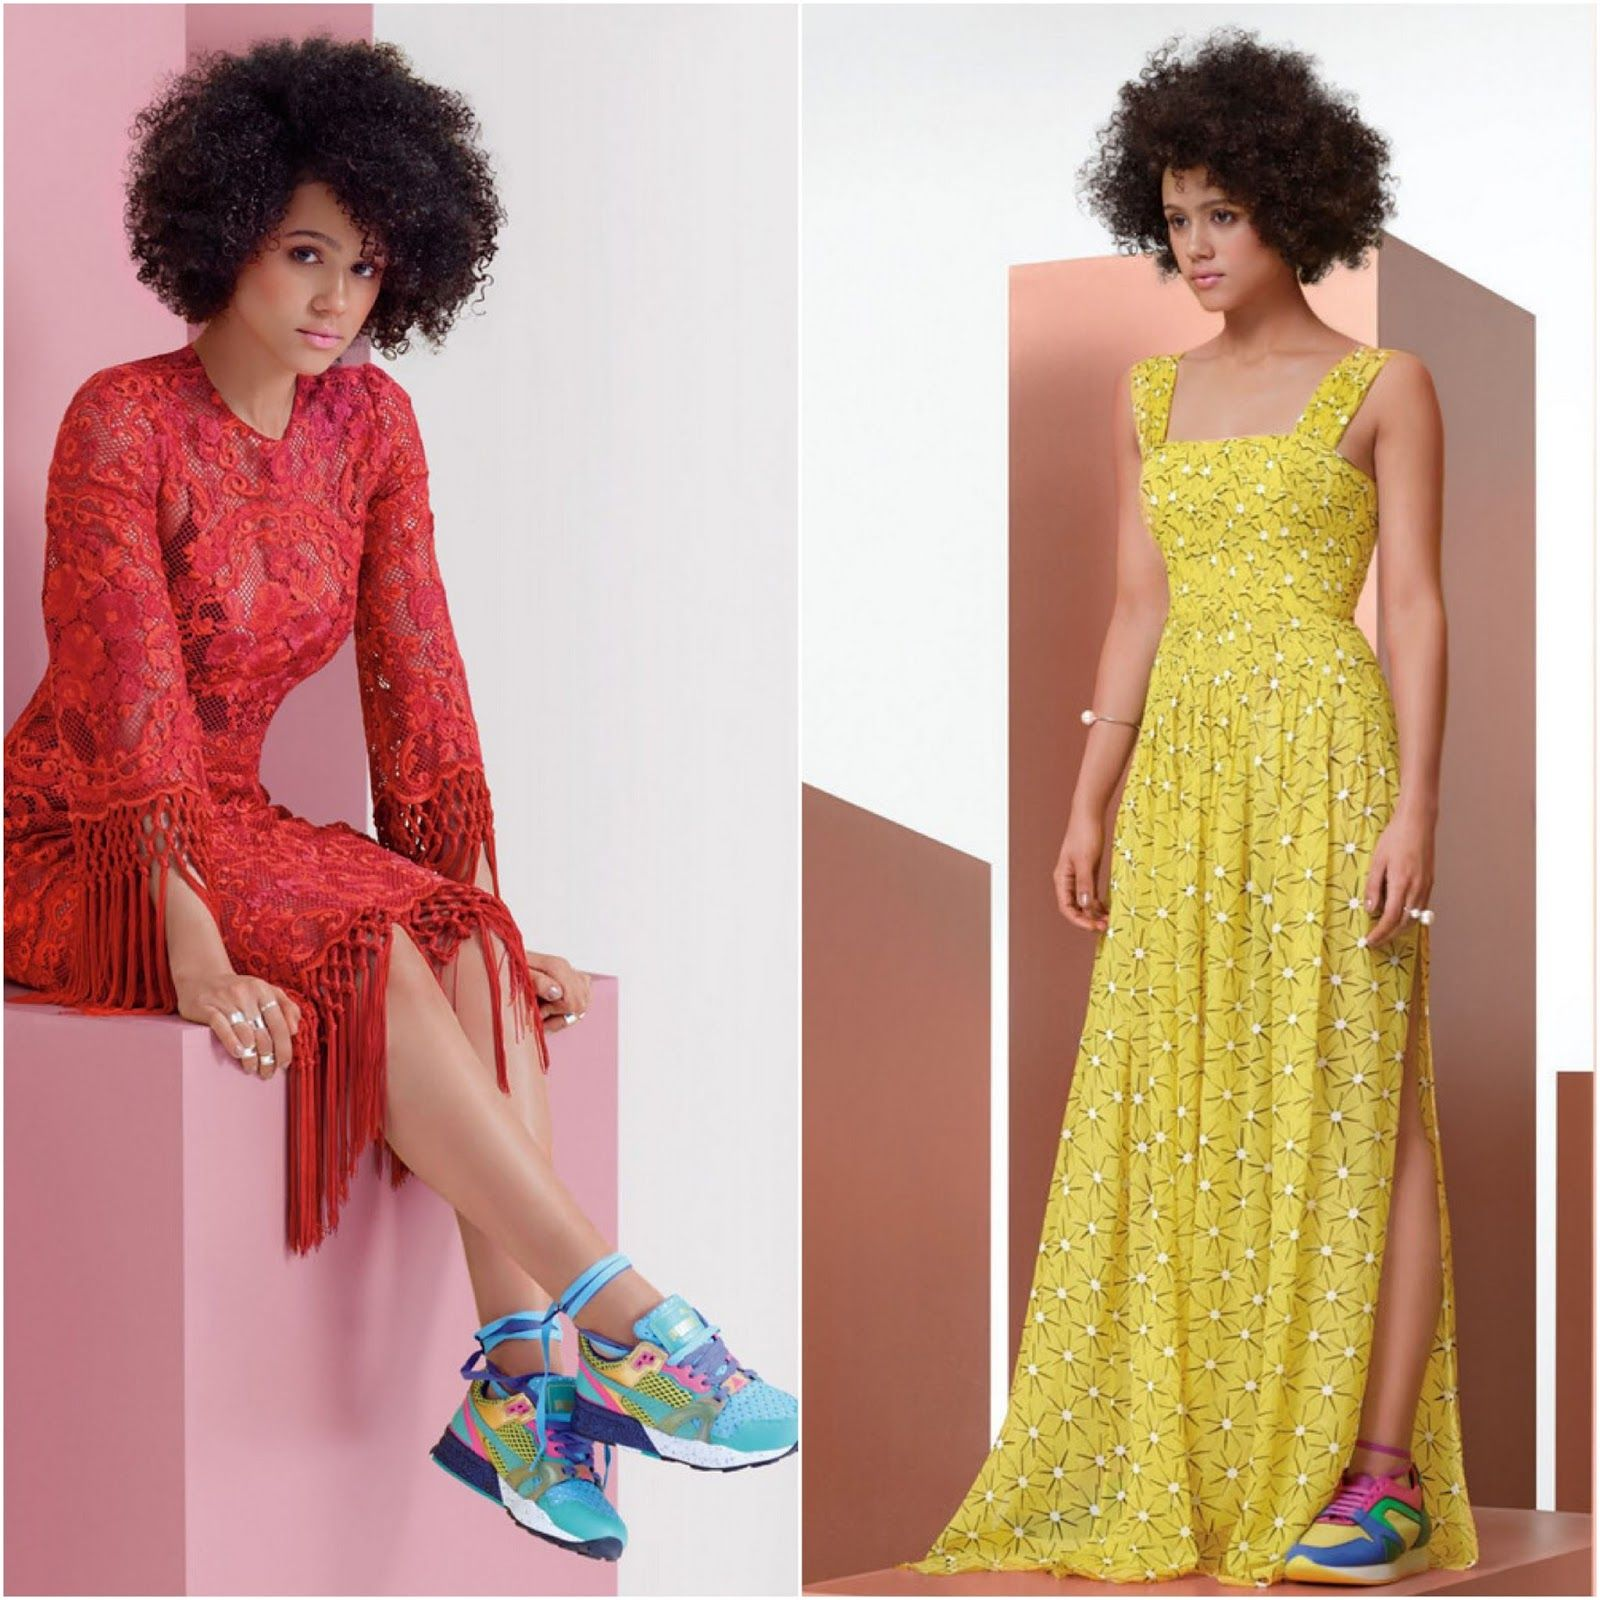 Simply cyn dress up your sneaks dresses pinterest yellow